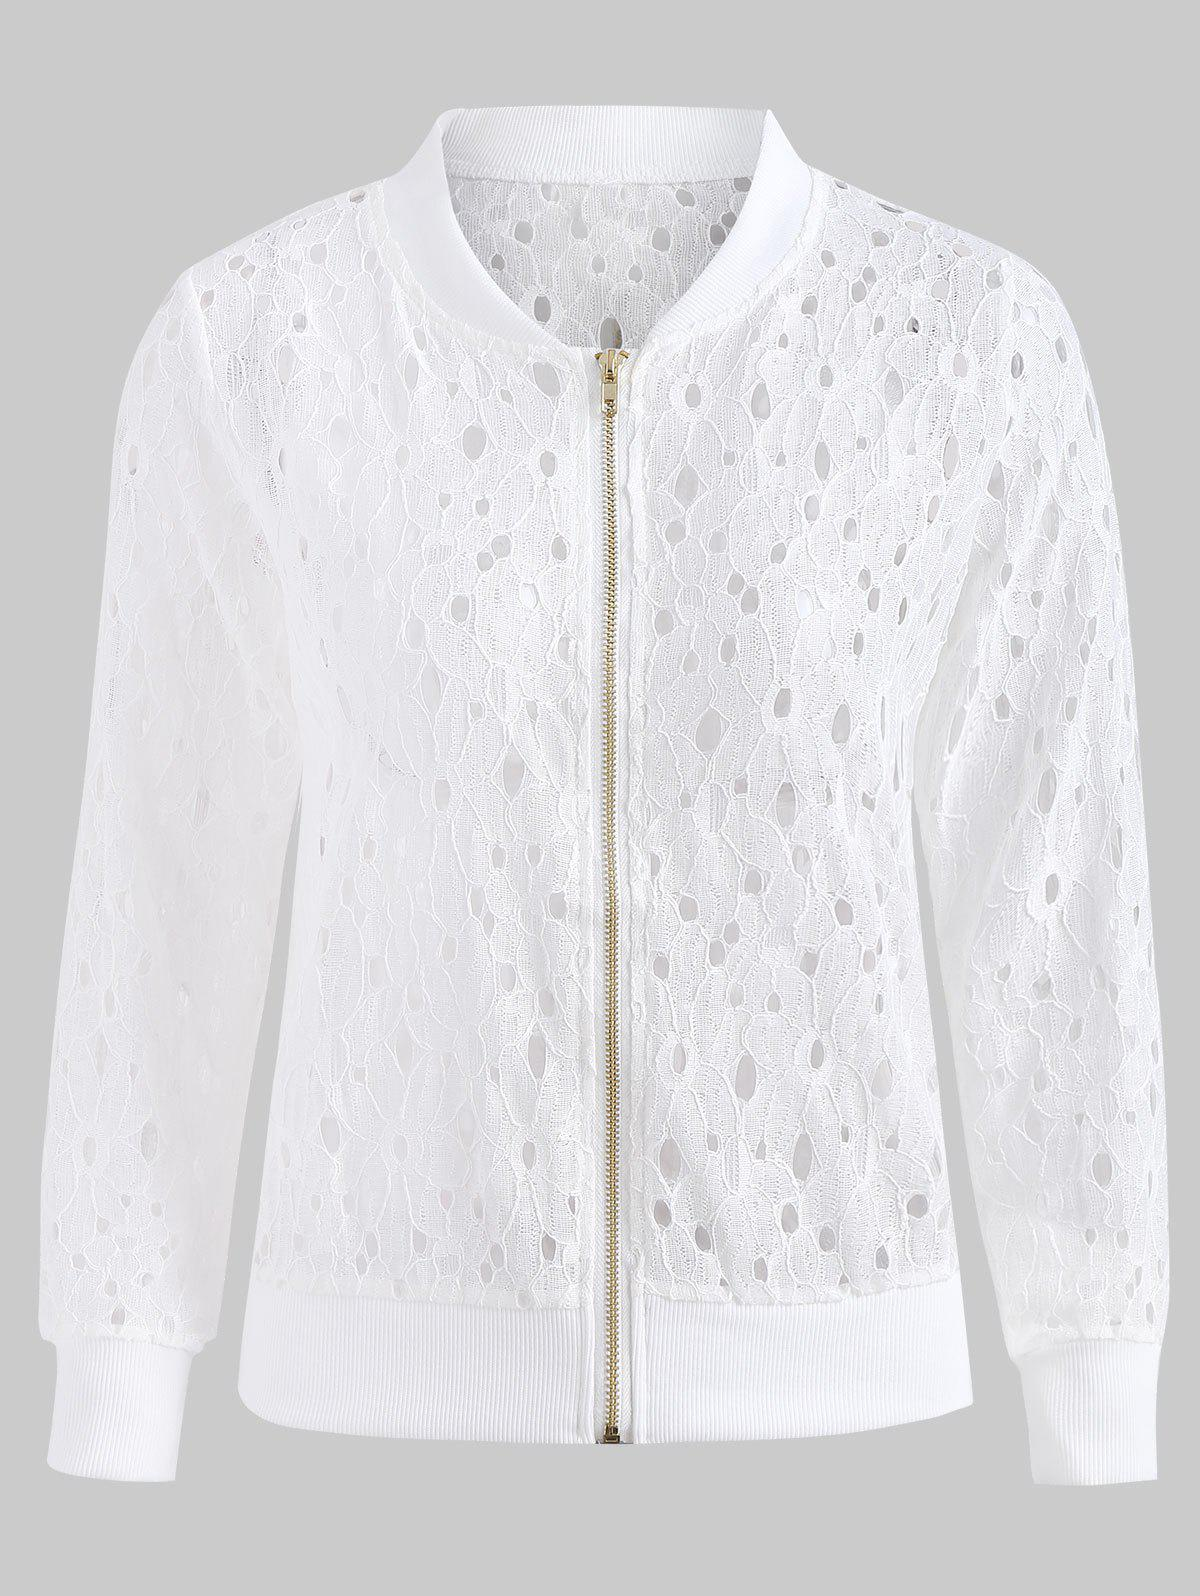 Chic Zip Up Lace Jacket